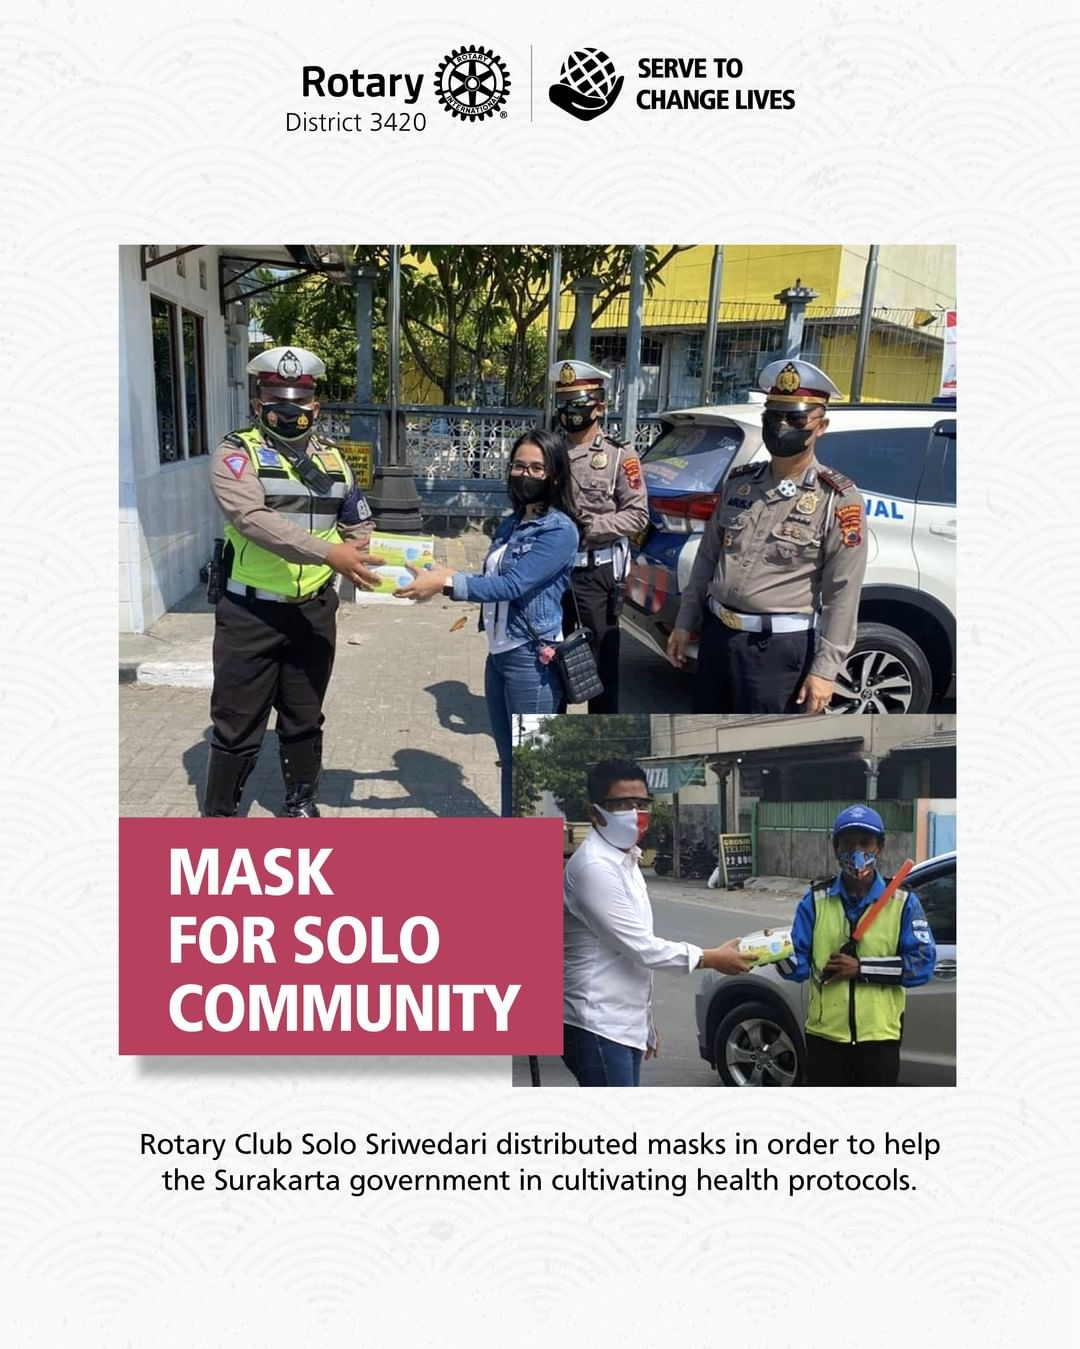 Mask for Solo Community